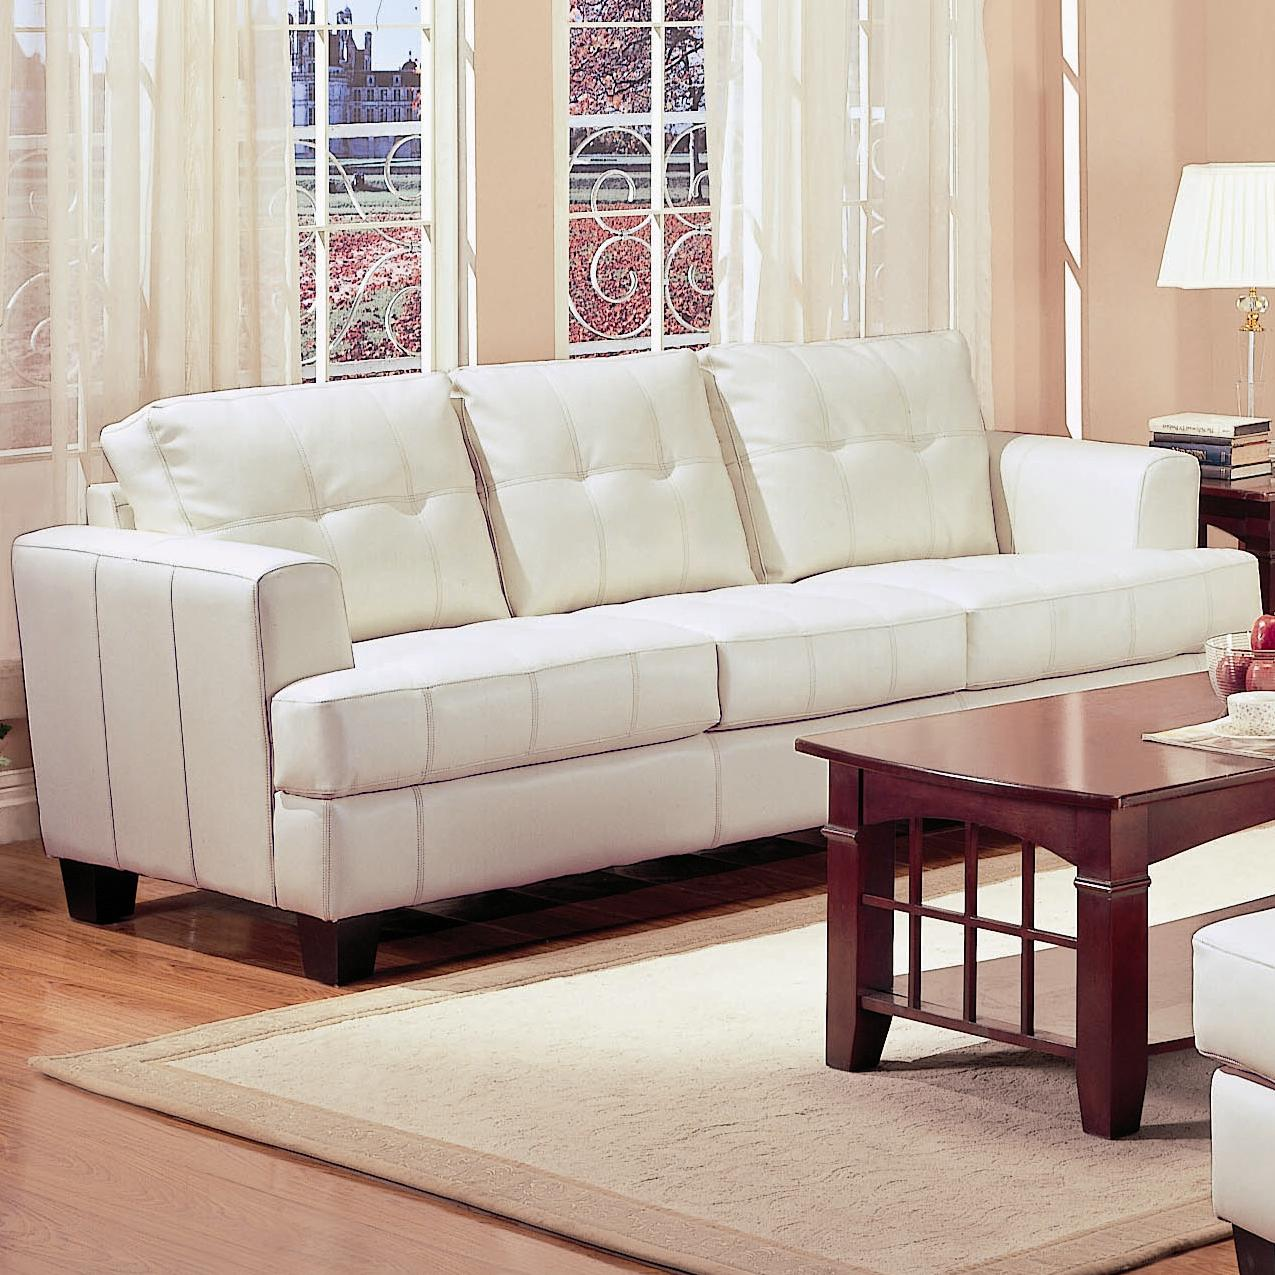 Beige Leather Sofa Steal A Sofa Furniture Outlet Los